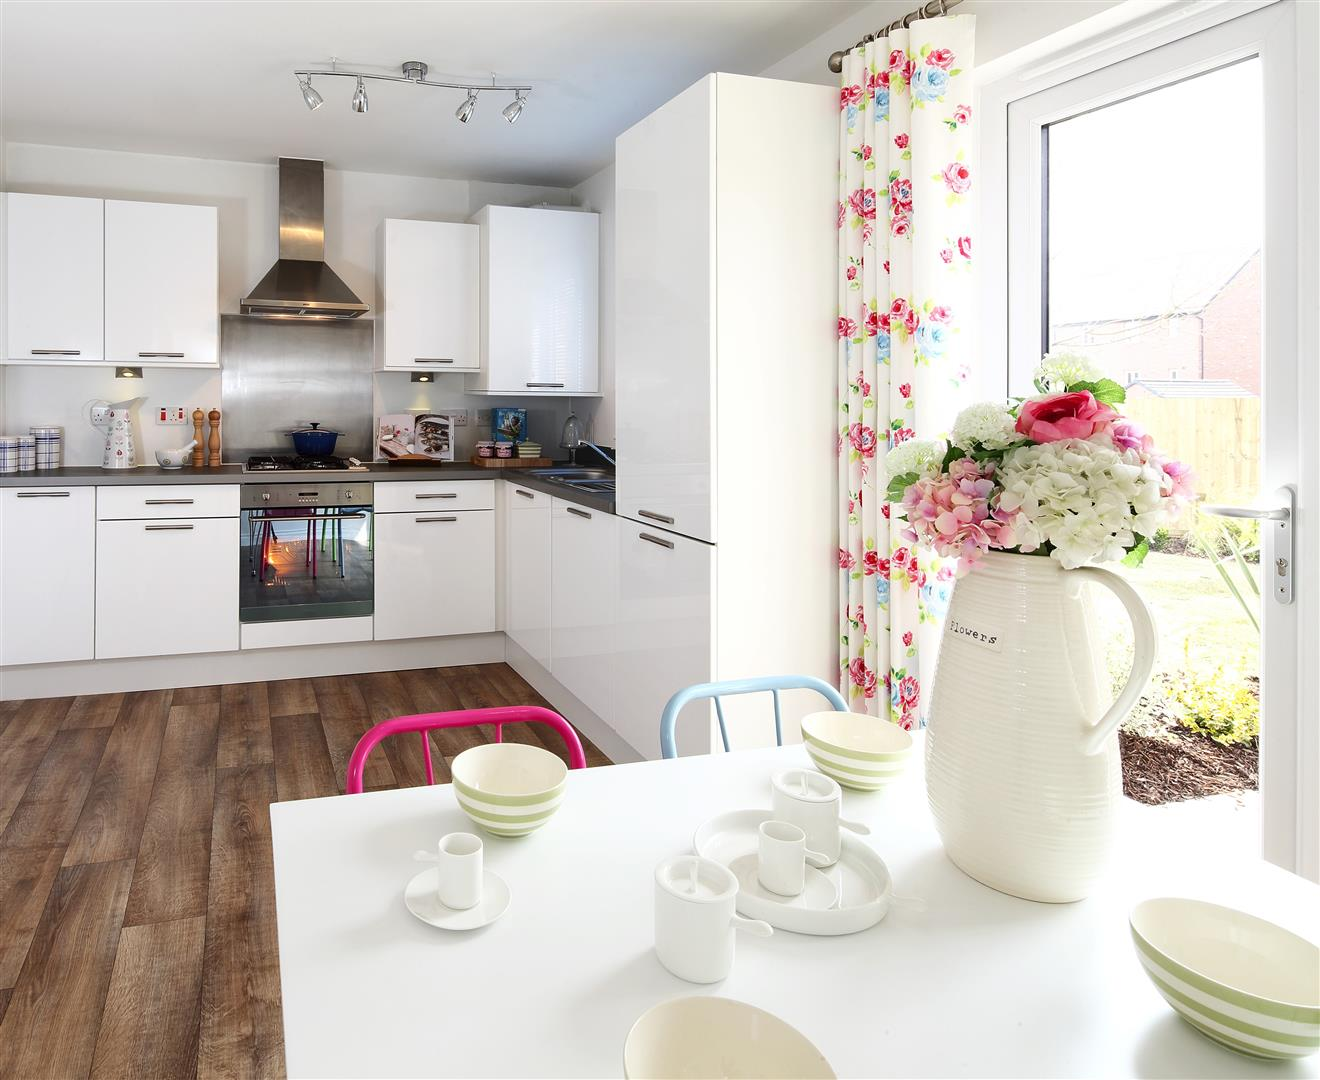 Argyll End, Stewart Milne Homes, Hunters Meadow, Auchterarder, Perthshire, PH3 1PA, UK